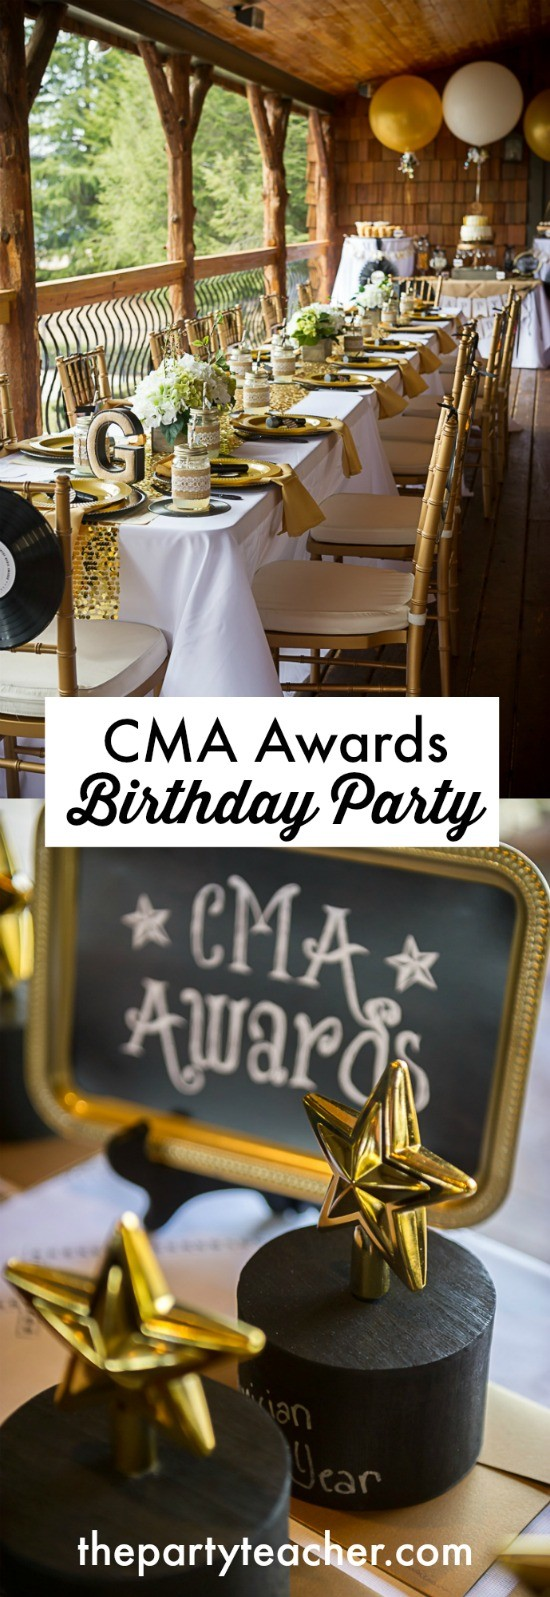 CMA Awards Birthday Party Ideas by The Party Teacher